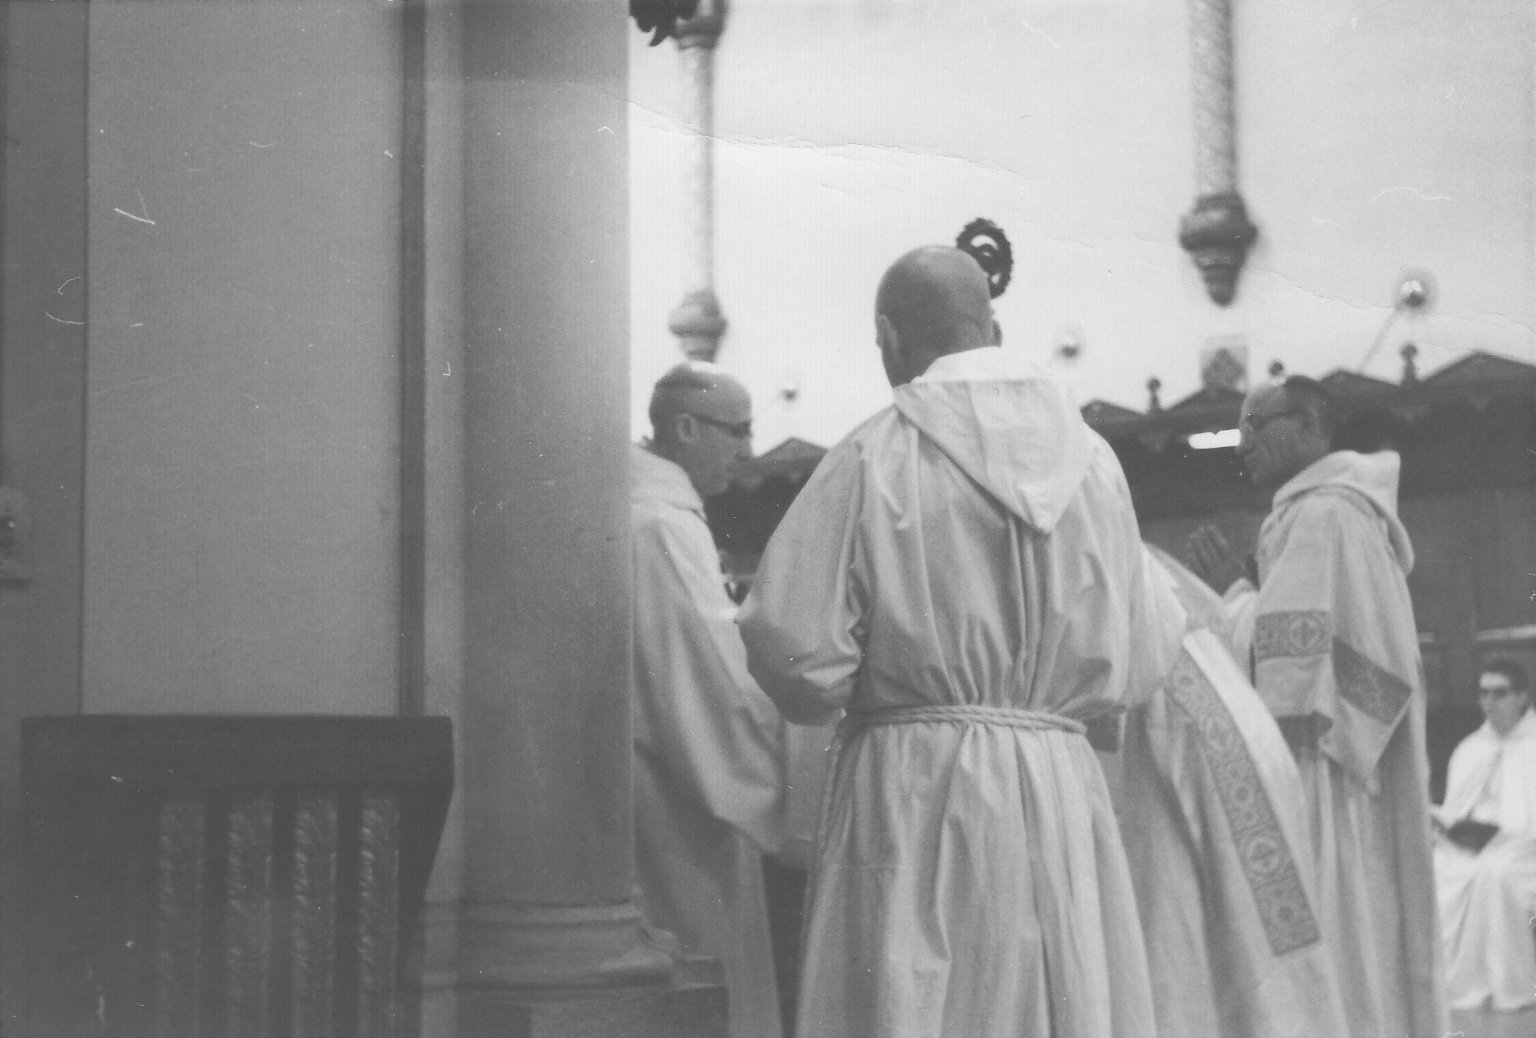 Dom Fulgence Fortier, abbott of Notre Dame Des Praries, during Compline services with the monks, ca. 1960s.